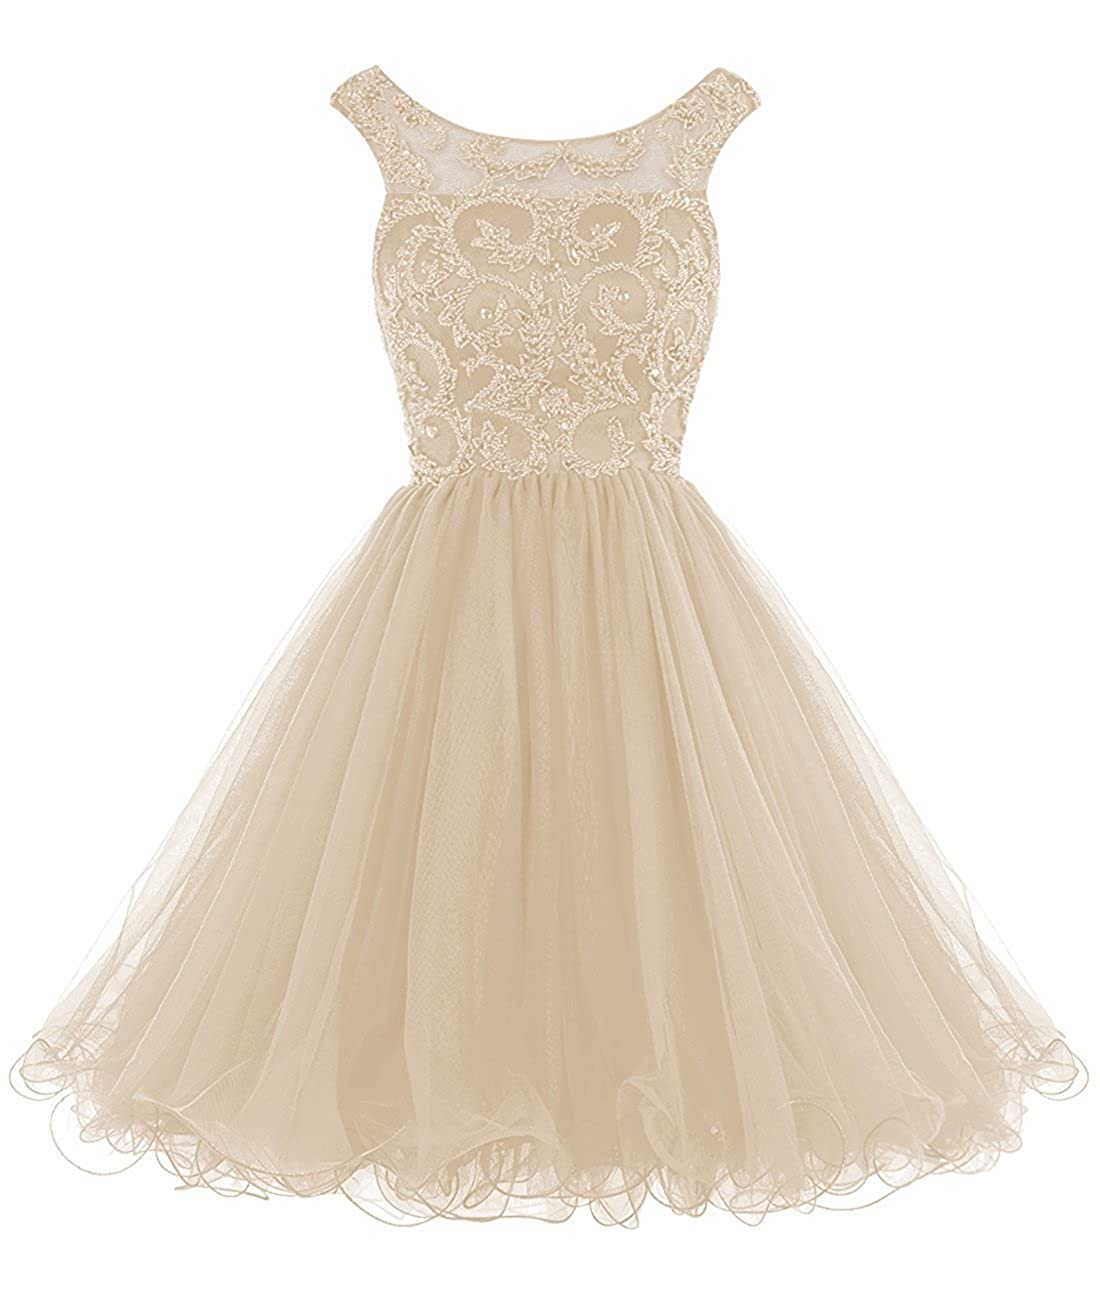 Champagne Caissen Women's Short Ball Gown Illusion Scoop Neck Beading Rhinestones Tulle Prom Dress V Back with Zipper Party Wear